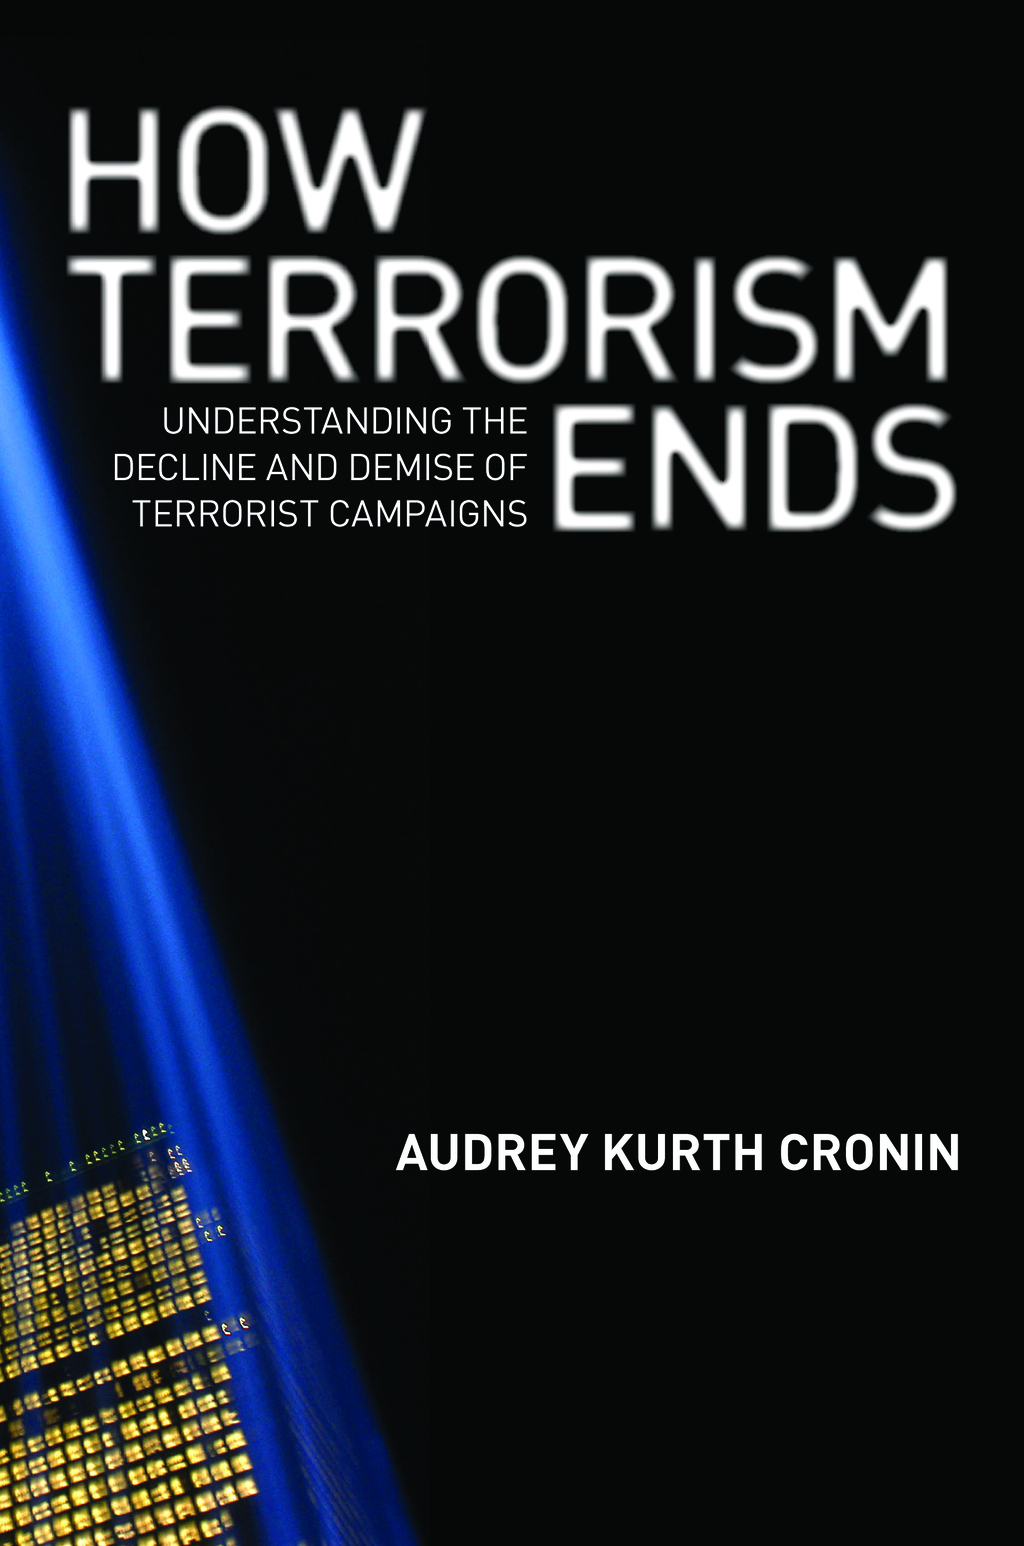 How Terrorism Ends By: Audrey Kurth Cronin